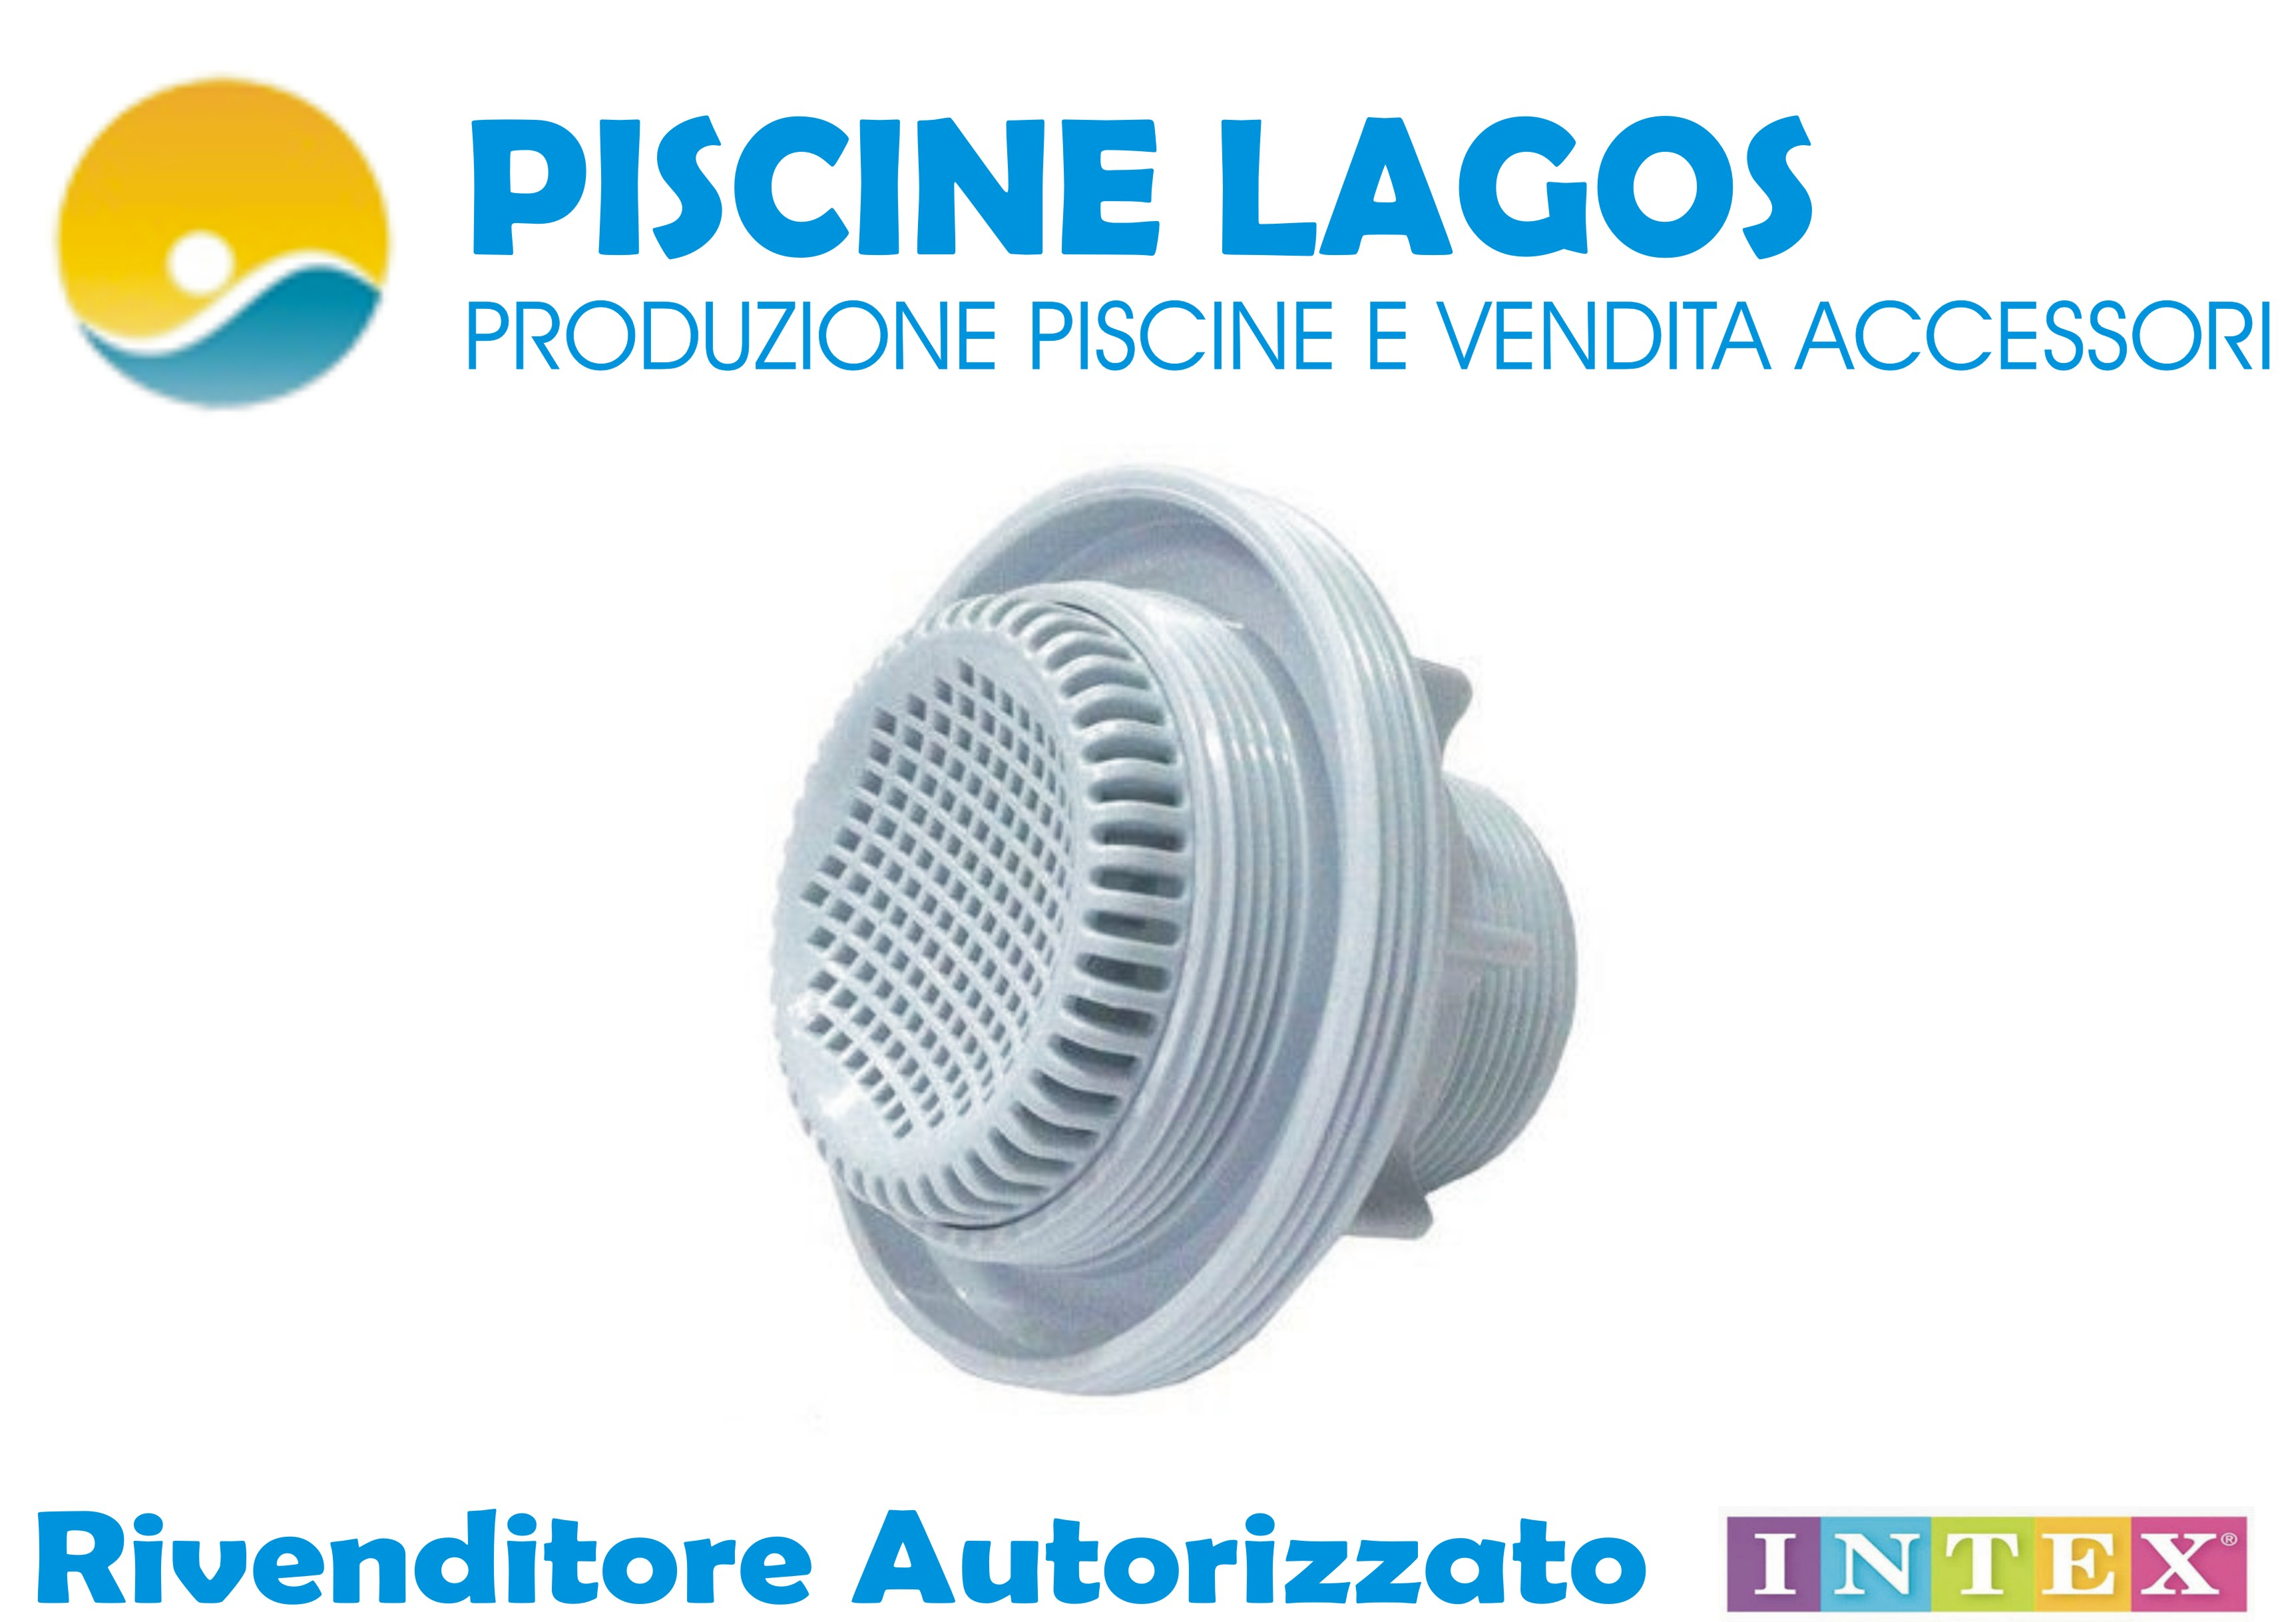 Bocchetta di aspirazione originale intex piscine lagos for Intex piscine ricambi